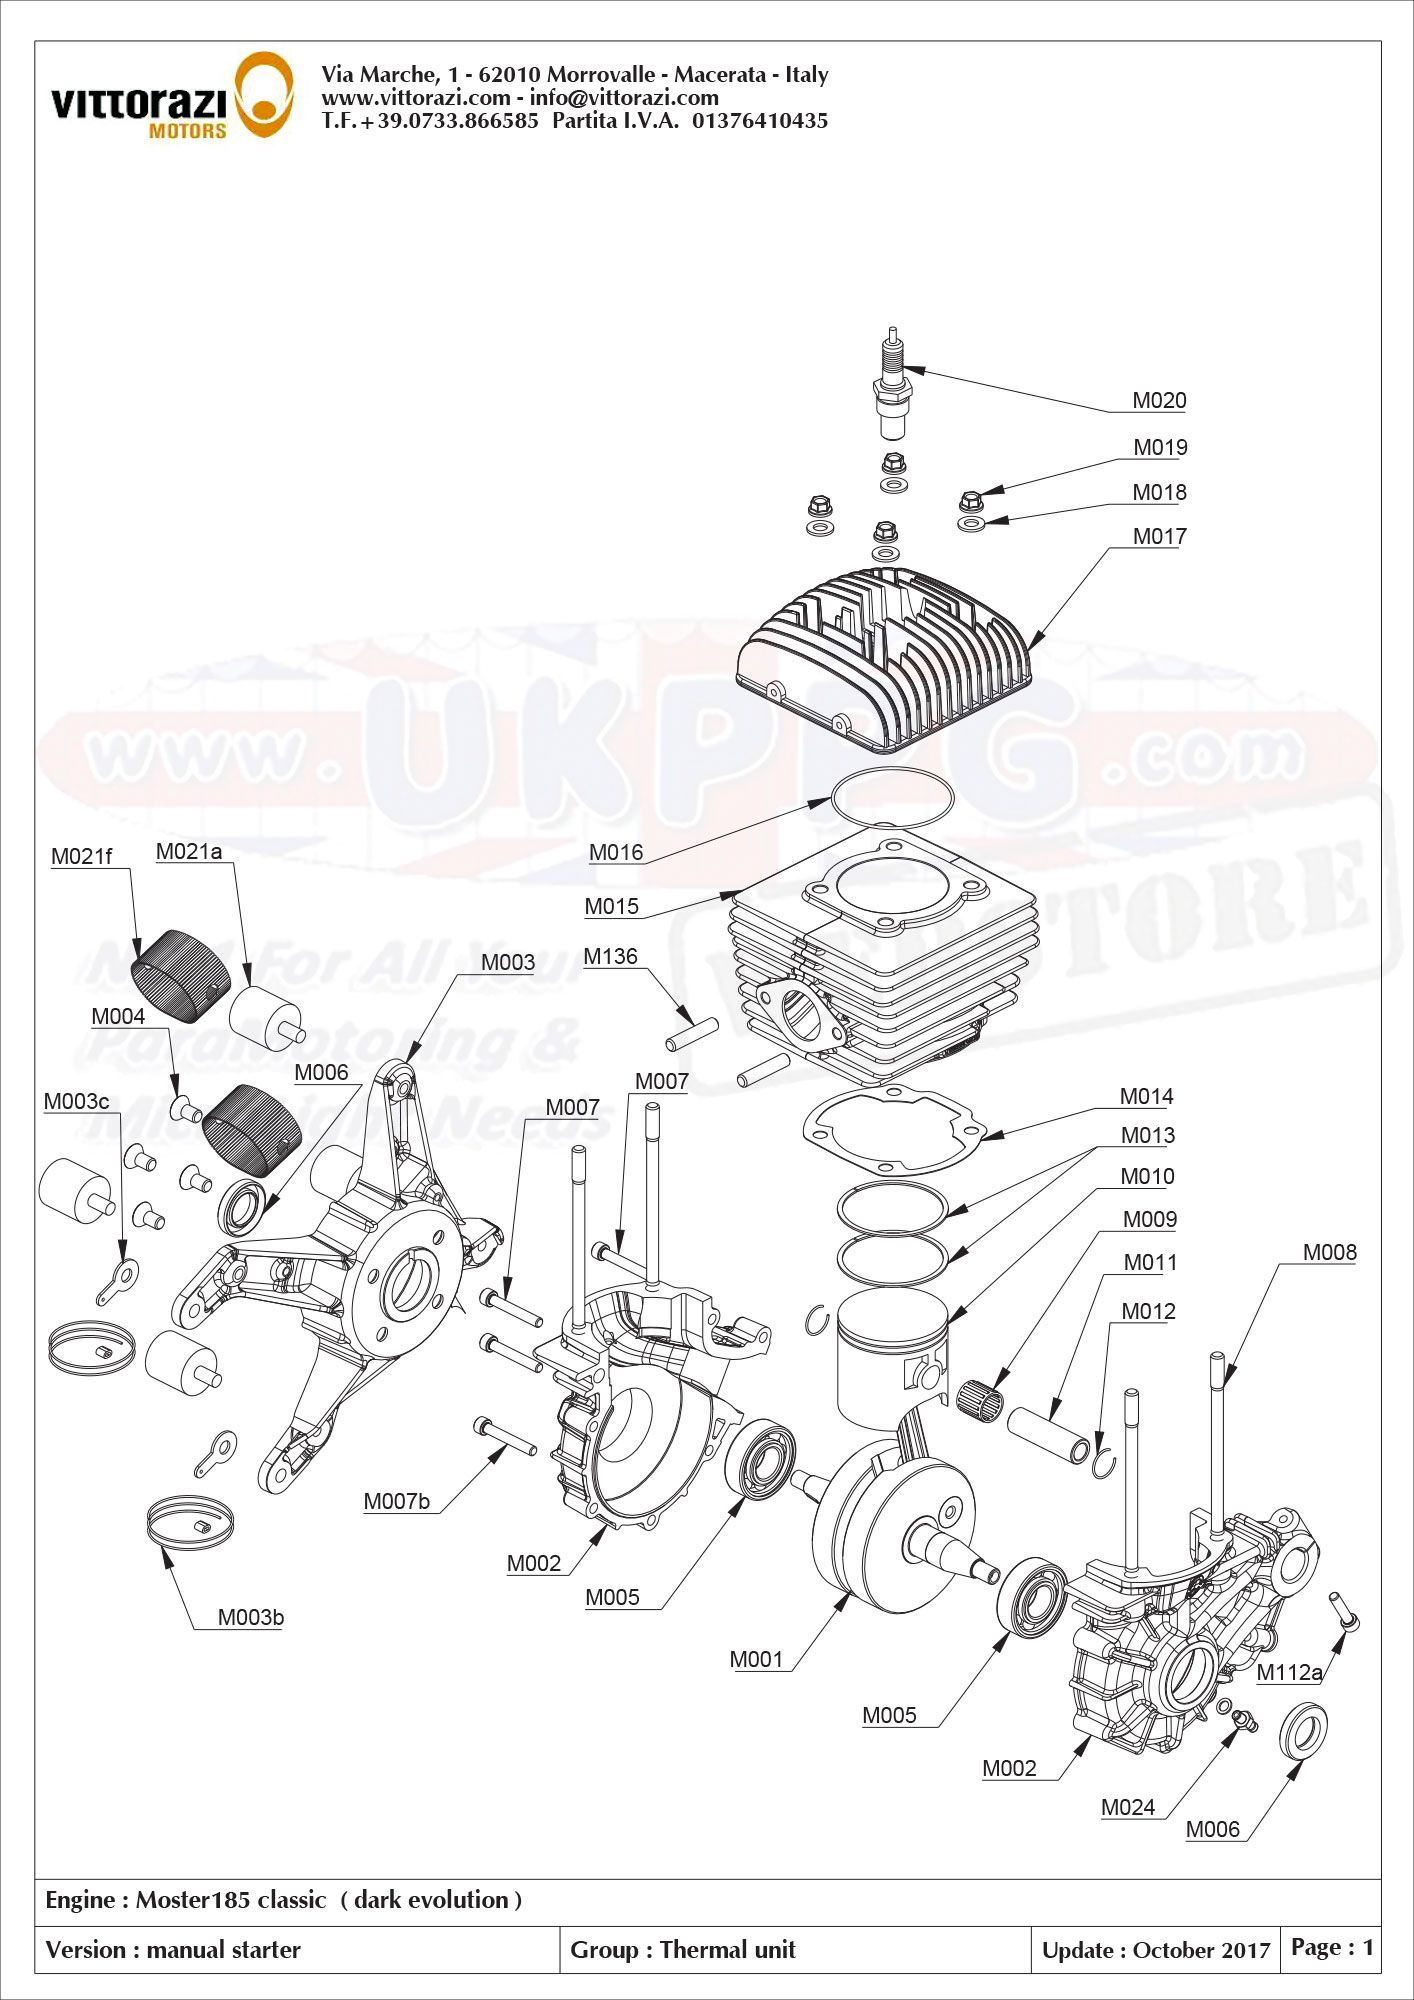 Moster 185 Classic Parts